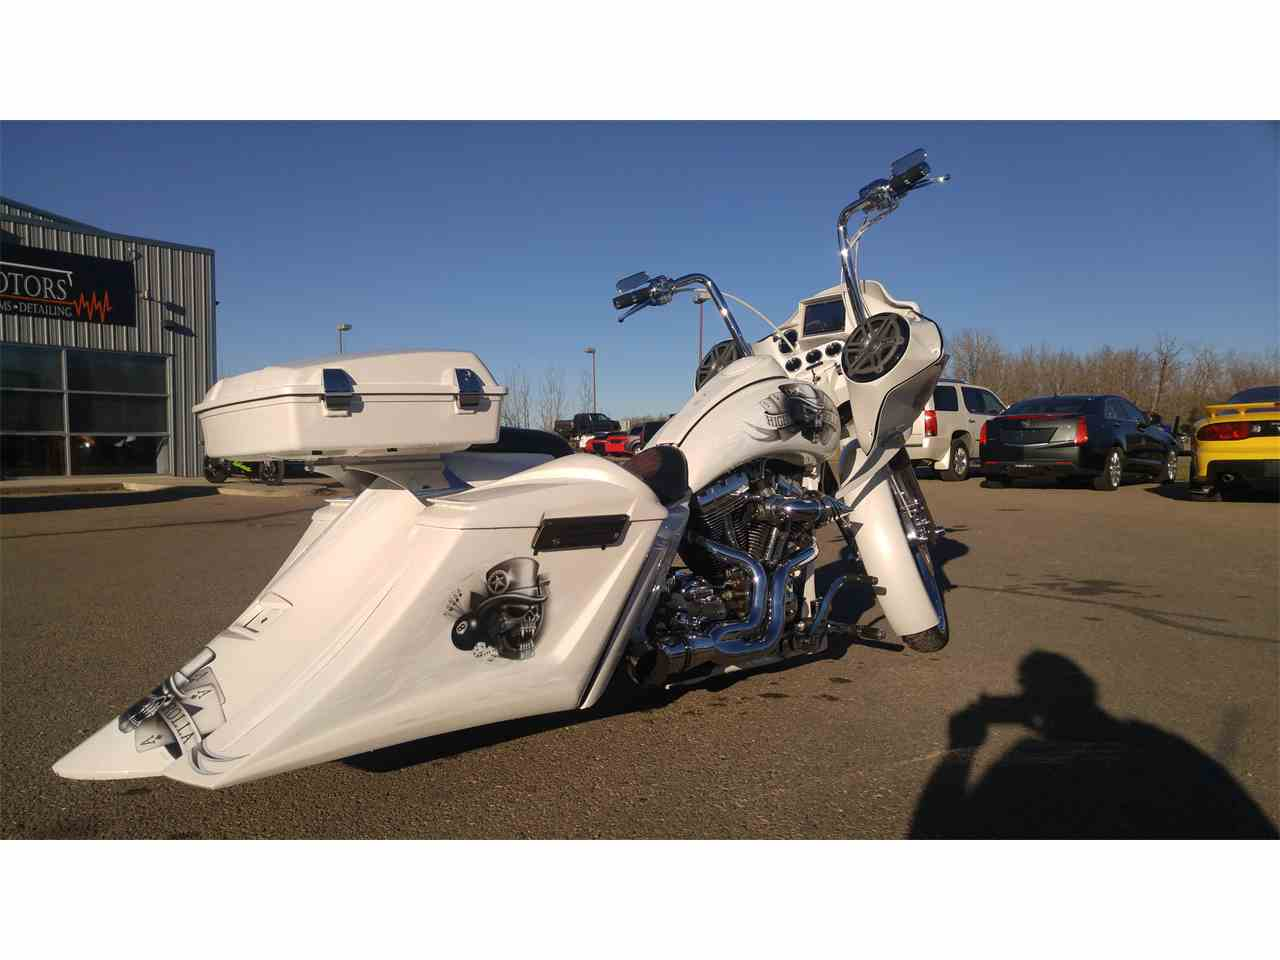 Large Picture of '16 Harley Davidson Road Glide located in Sylvan Lake Alberta - $49,900.00 Offered by Adrenalin Motors - LI8J